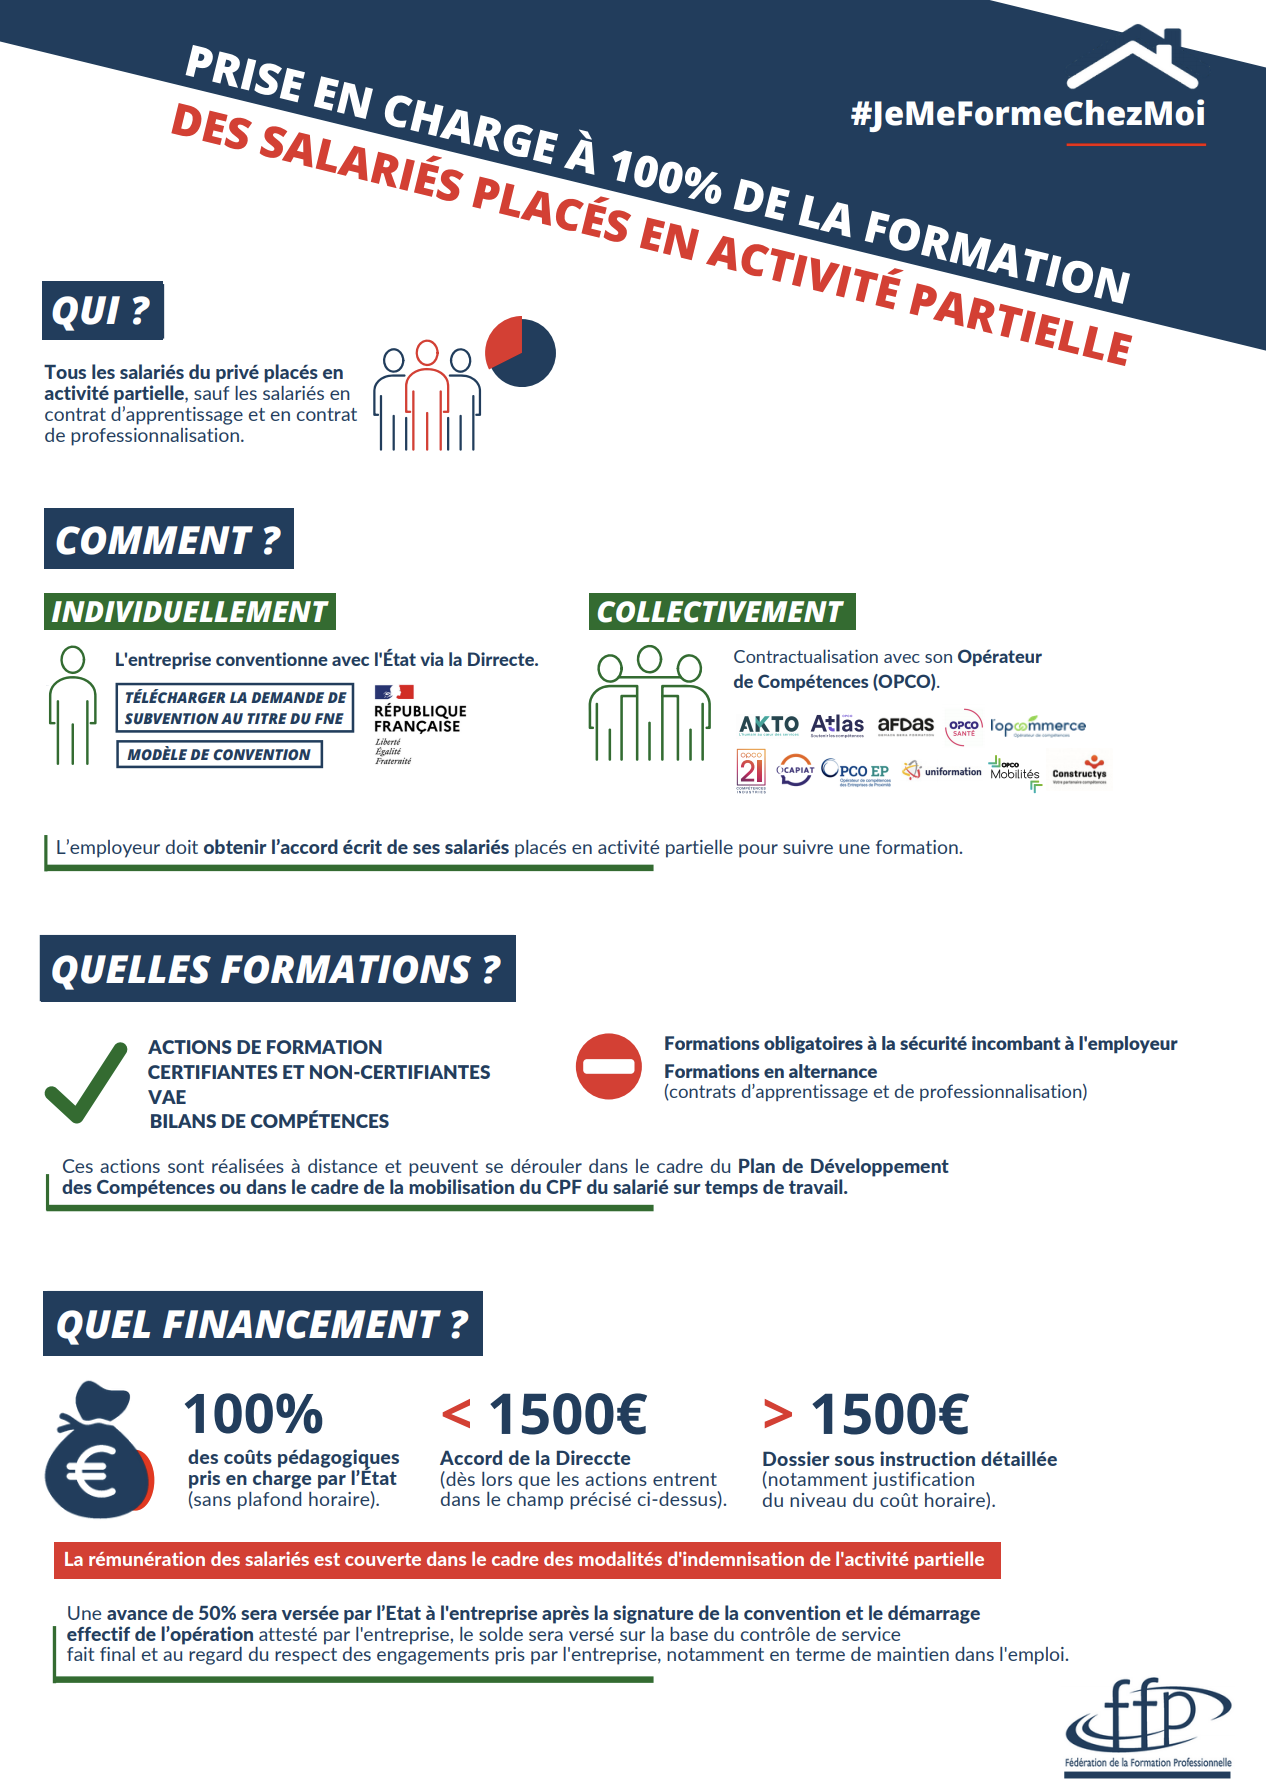 Infographie formation chomage partiel